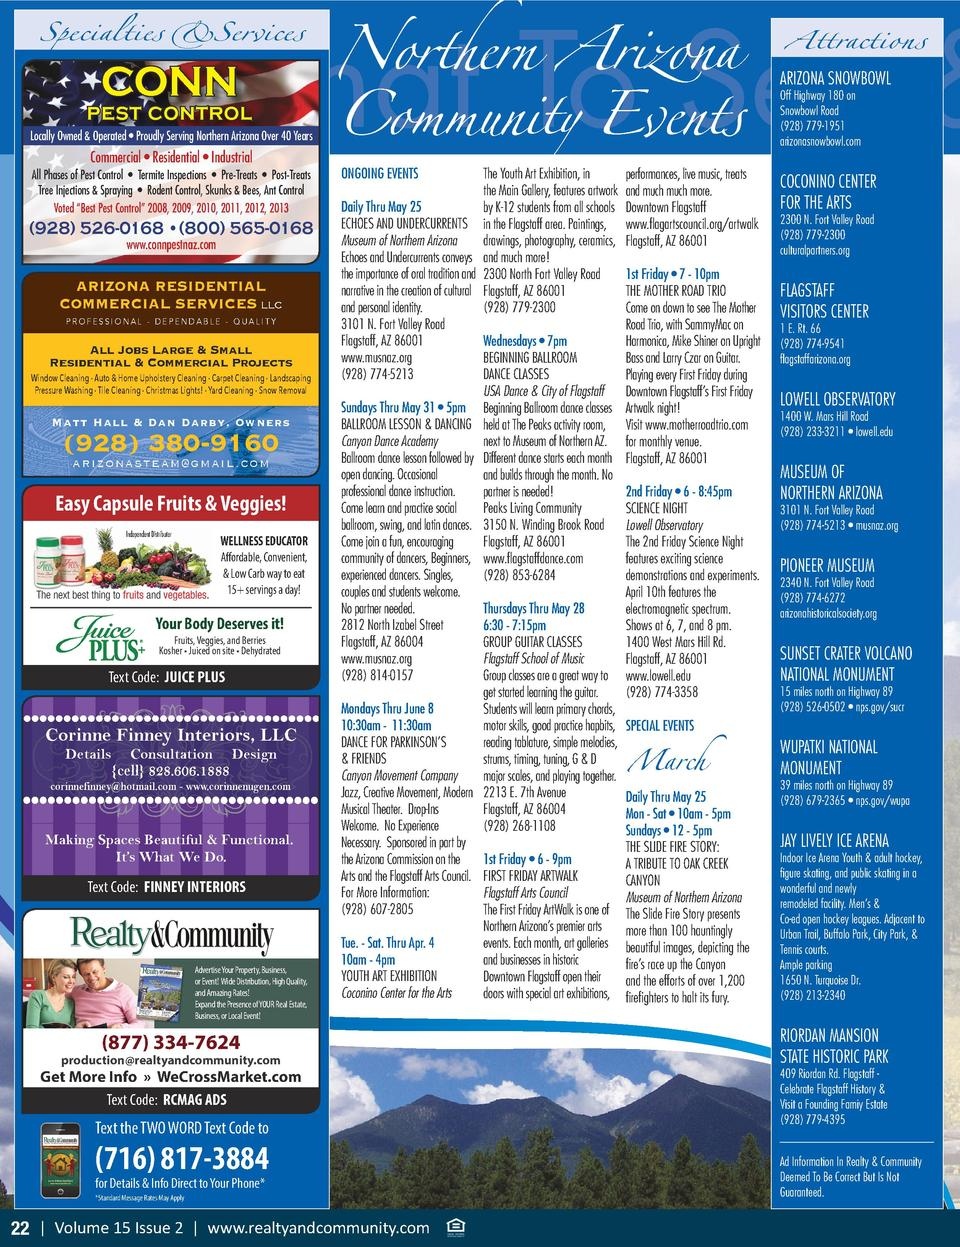 Northern Arizona Attractions attractions, spec What To See   Community Events  Specialties  Services CONN  ARIZONA SNOWBOW...